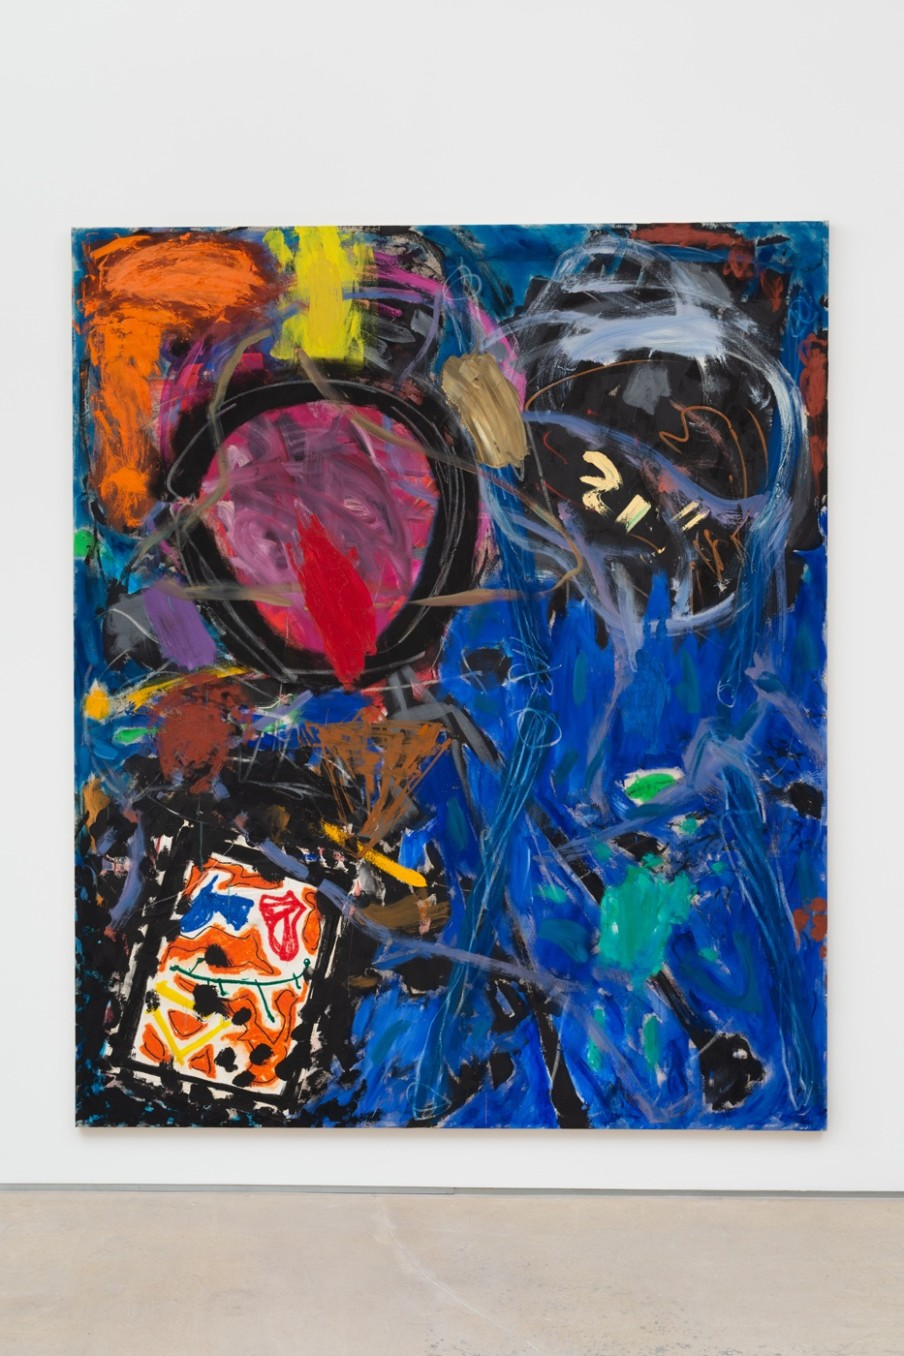 Basil Beattie, Blue Joy, 1982, Oil and collage on canvas, 254.5 x 212.4 cm, 100 1/4 x 83 5/8 in